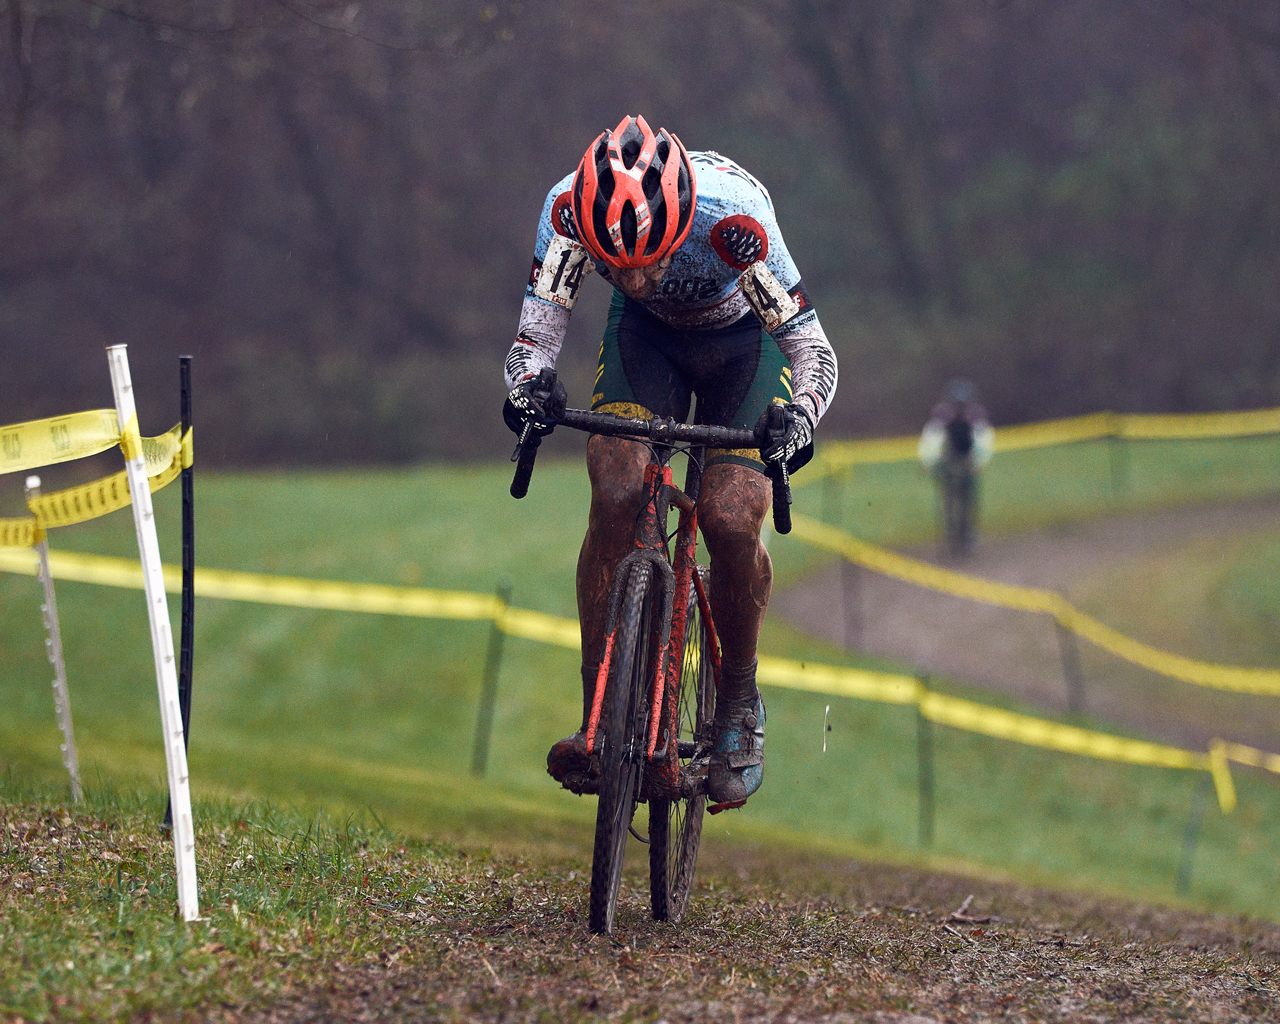 IMAGE: https://photos.smugmug.com/Cycling-Races/Rockland-County-Supercross-Cup-2017-day-1-and-2-1118-1119/Rockland-County-Supercross-Cup-2017-day-1-1118/i-cBm992g/0/f6b497fe/O/supercrossday1b_11_18_1698.jpg